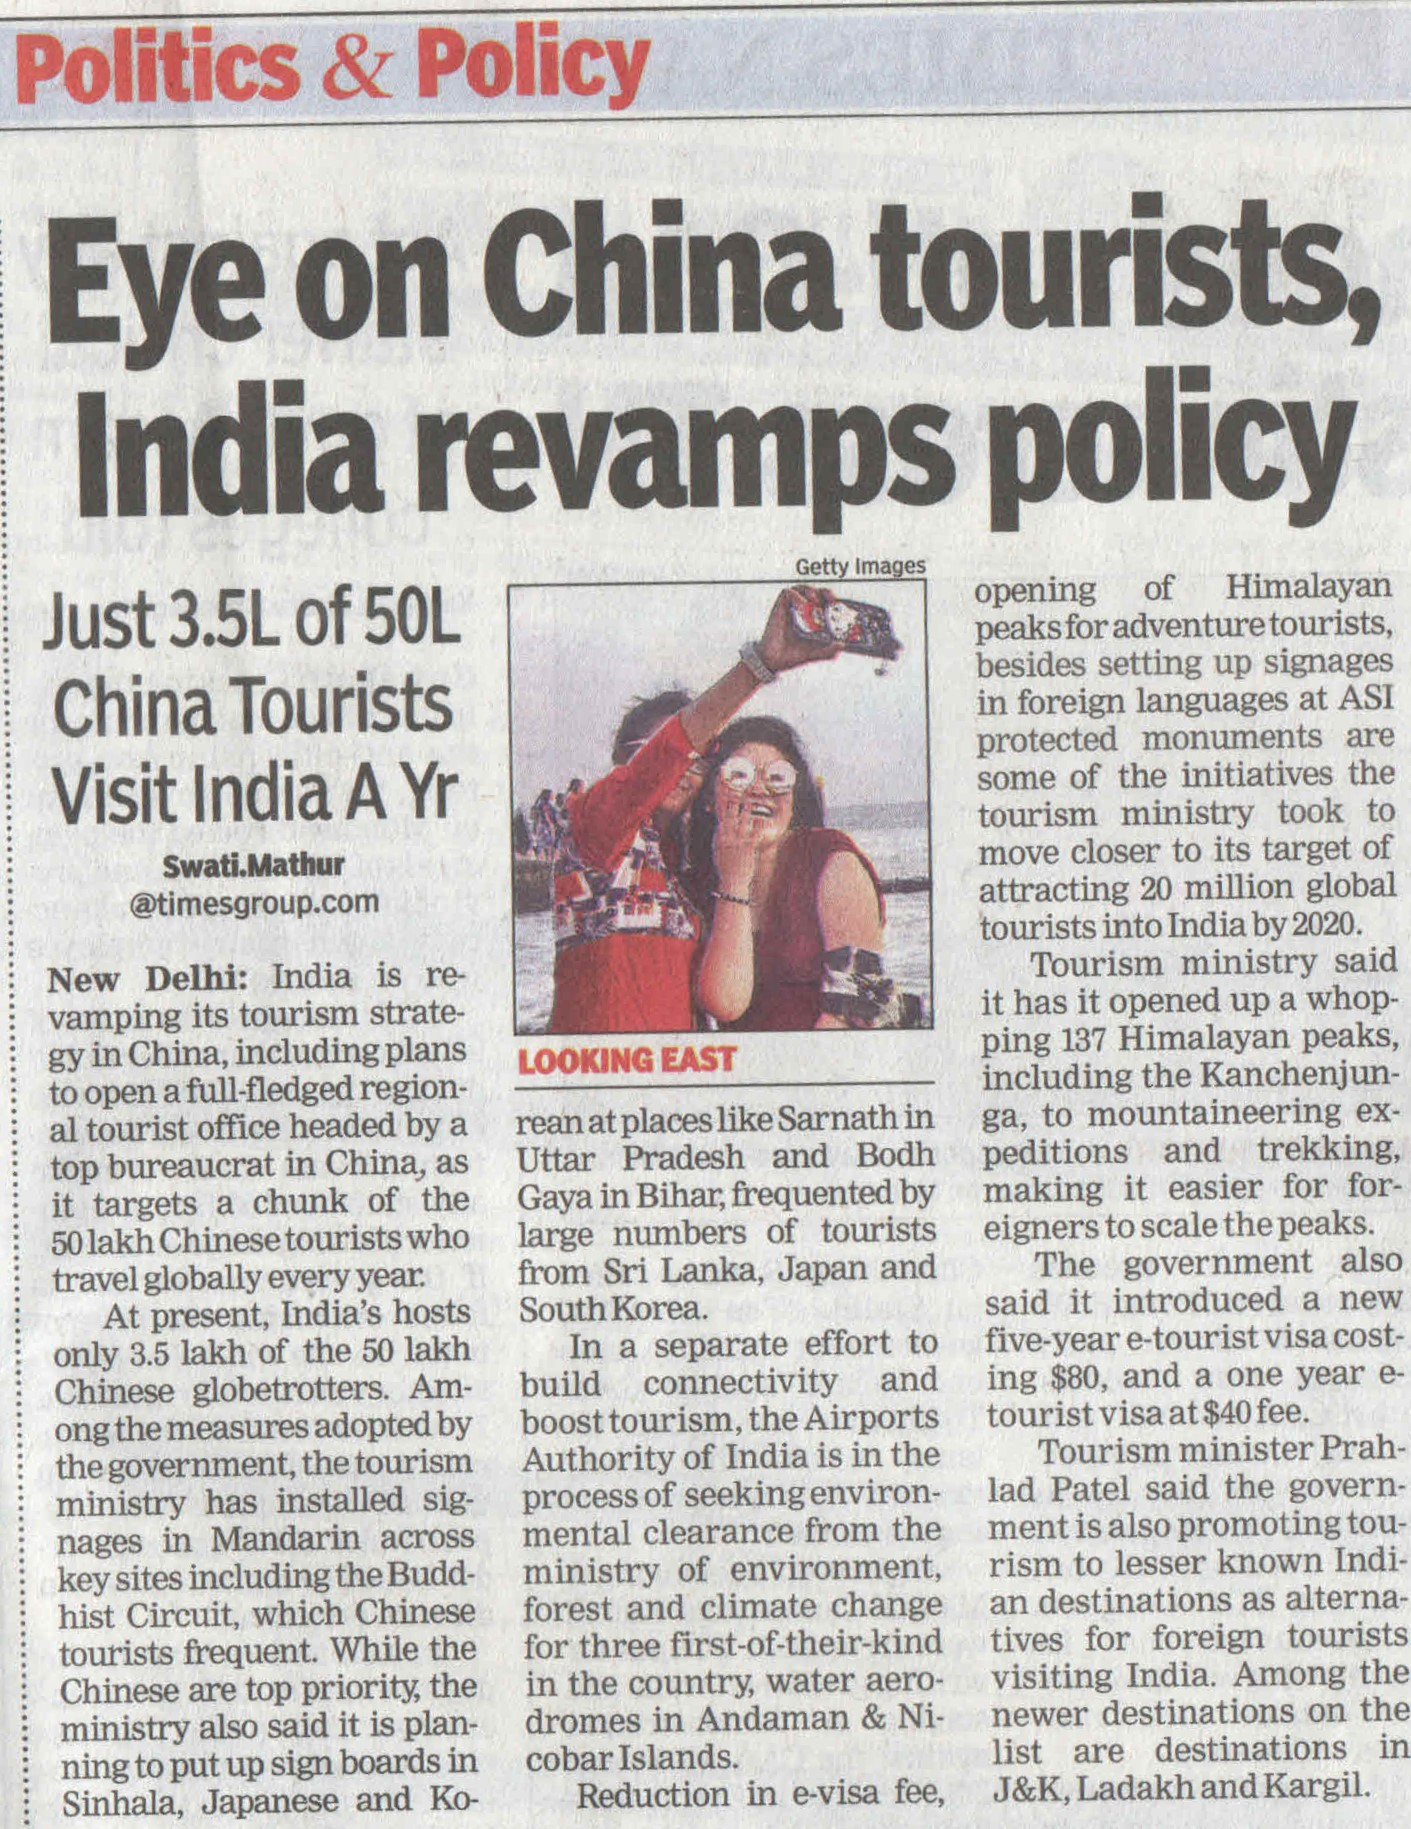 Eye on China tourists, India revamps  policty